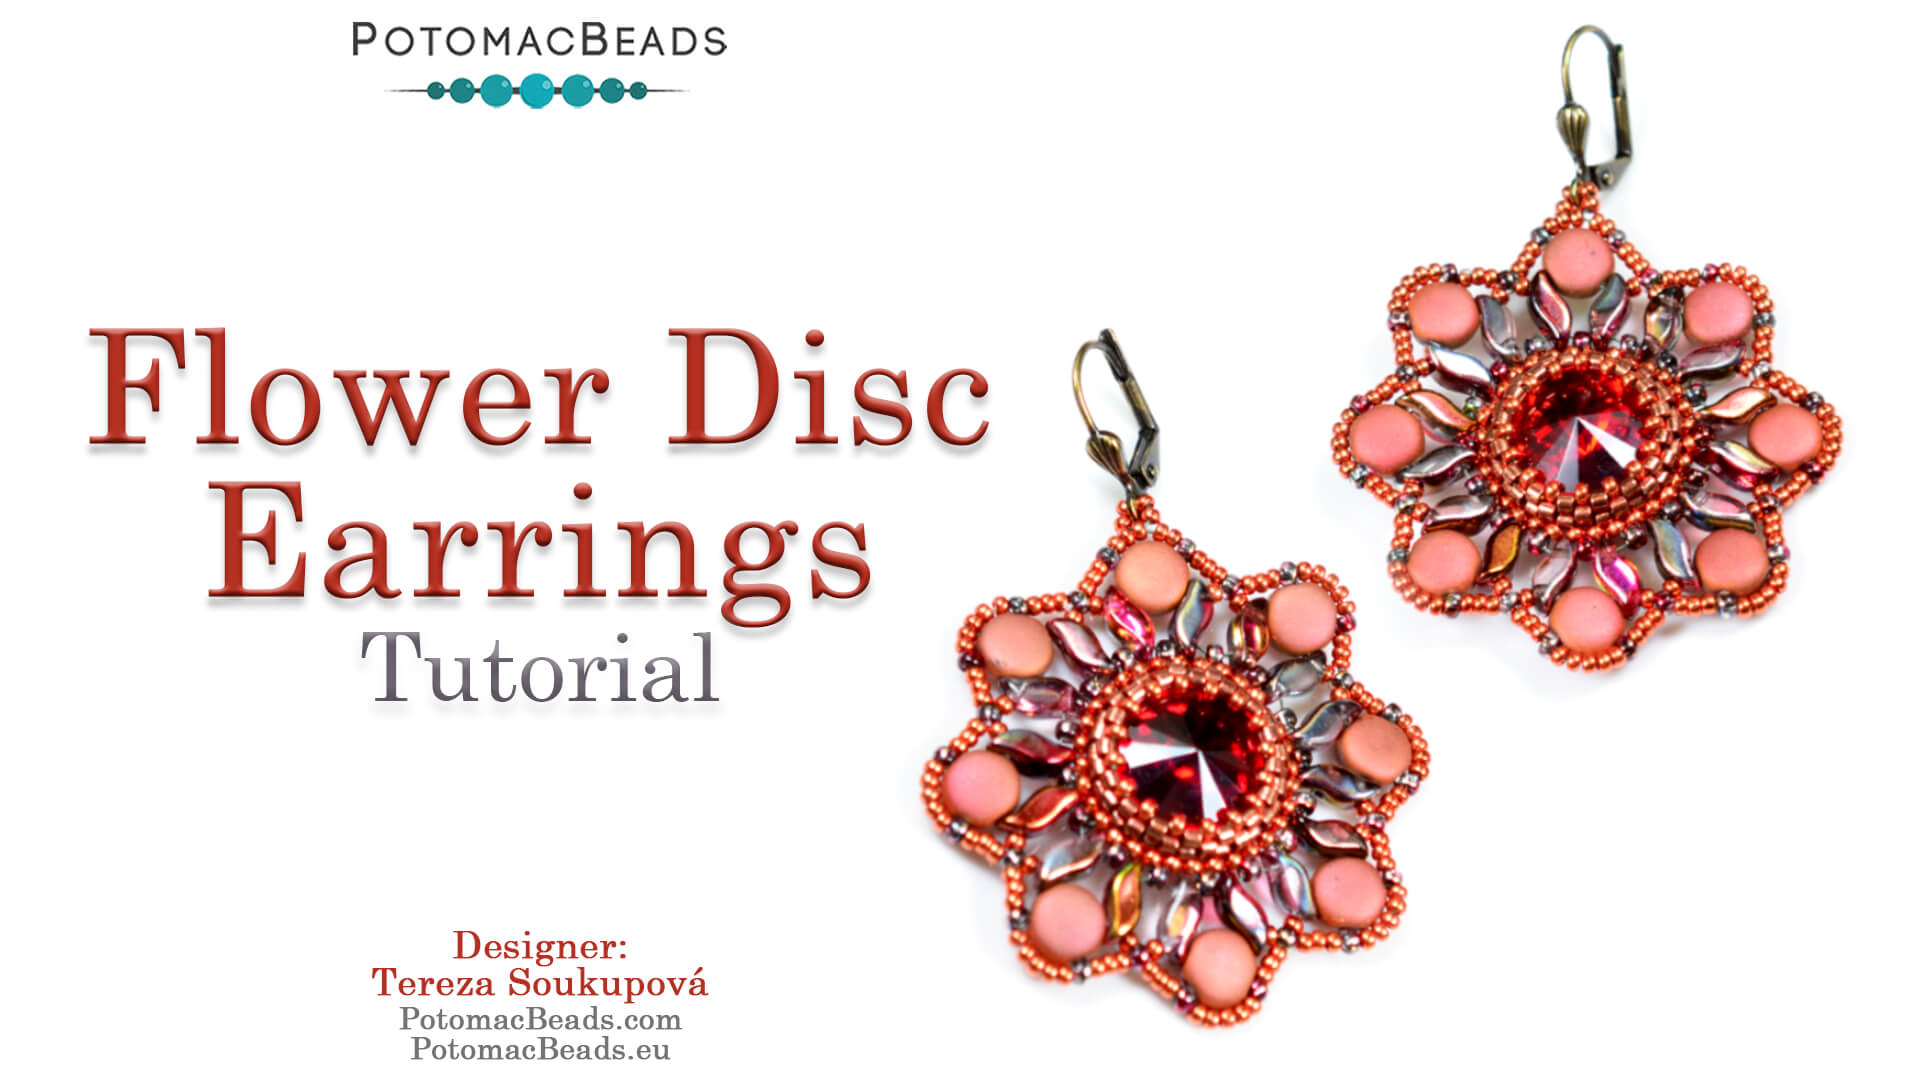 How to Bead Jewelry / Beading Tutorials & Jewel Making Videos / Earring Projects / Flower Disc Earrings Tutorial